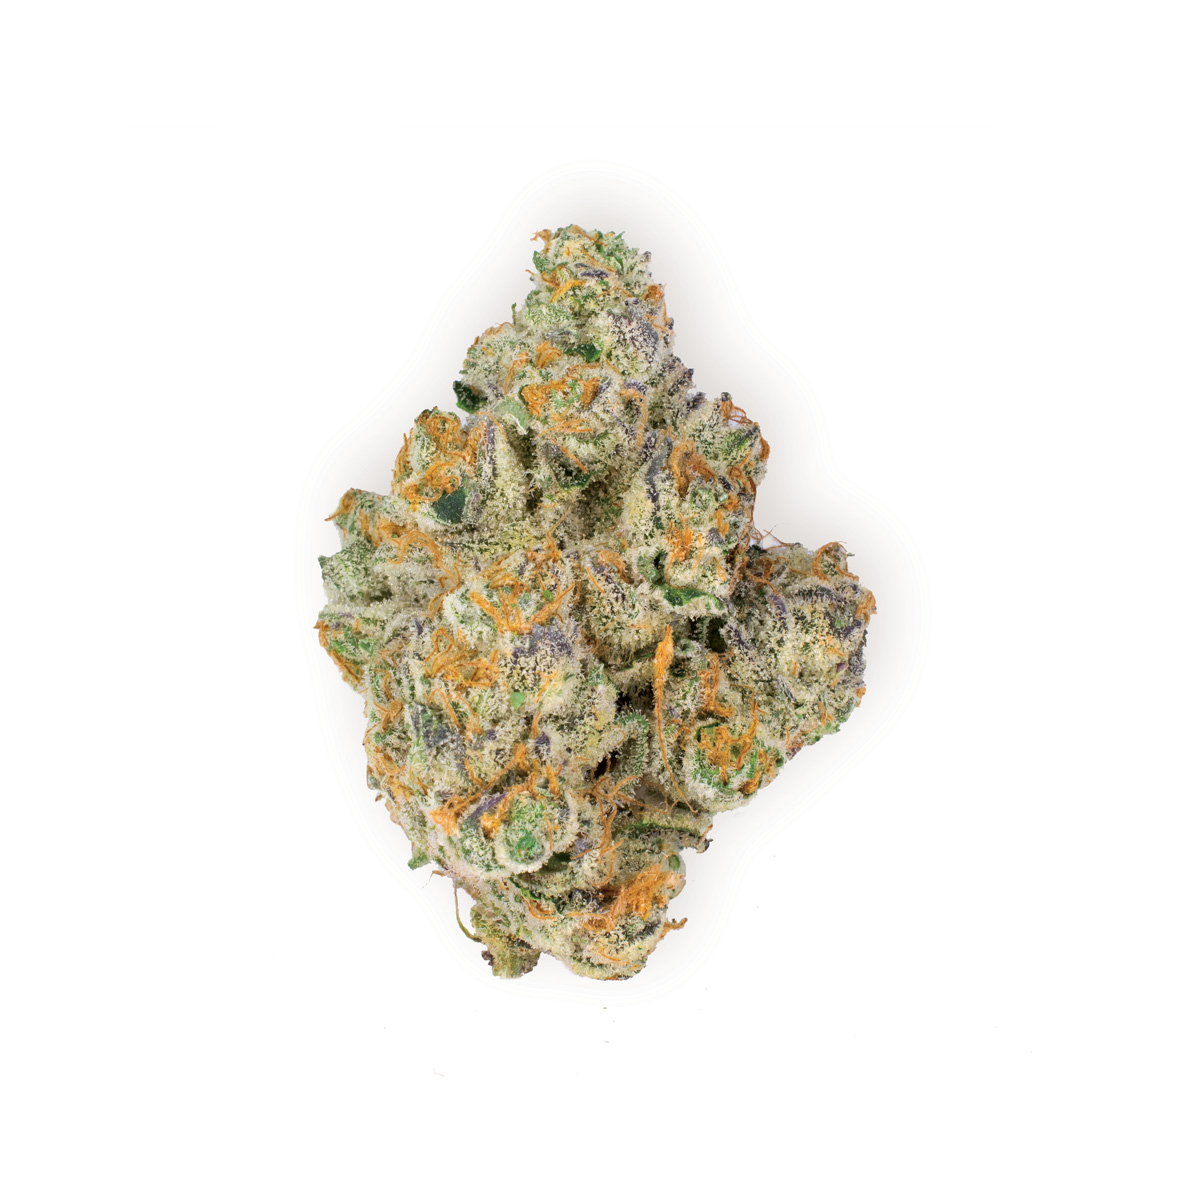 Wedding PIe - Indica Dominant Hybrid26.4% THC | .16% CBDWedding Pie is a recent indica-dominant cross between Wedding Cake and Grape Pie. Owing to its Grape Pie heritage, Wedding Pie produces fragrant buds that are fruity and sweet, with an undertone of pine and pepper. Just like a happy wedding, it elevates the mood. Unlike a wedding, it deeply relaxes the body.